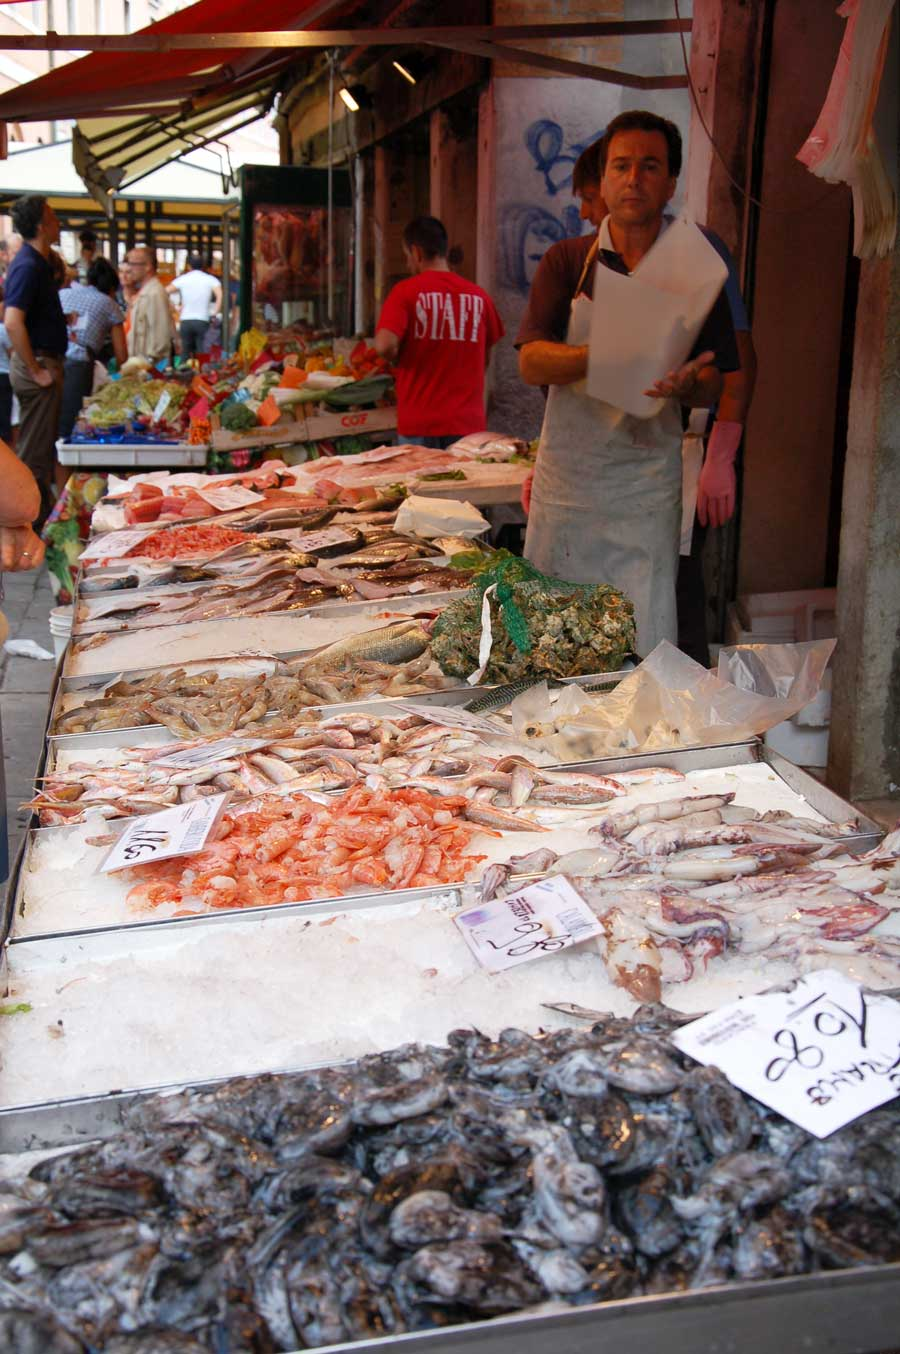 A Fishmonger in Venice Italy